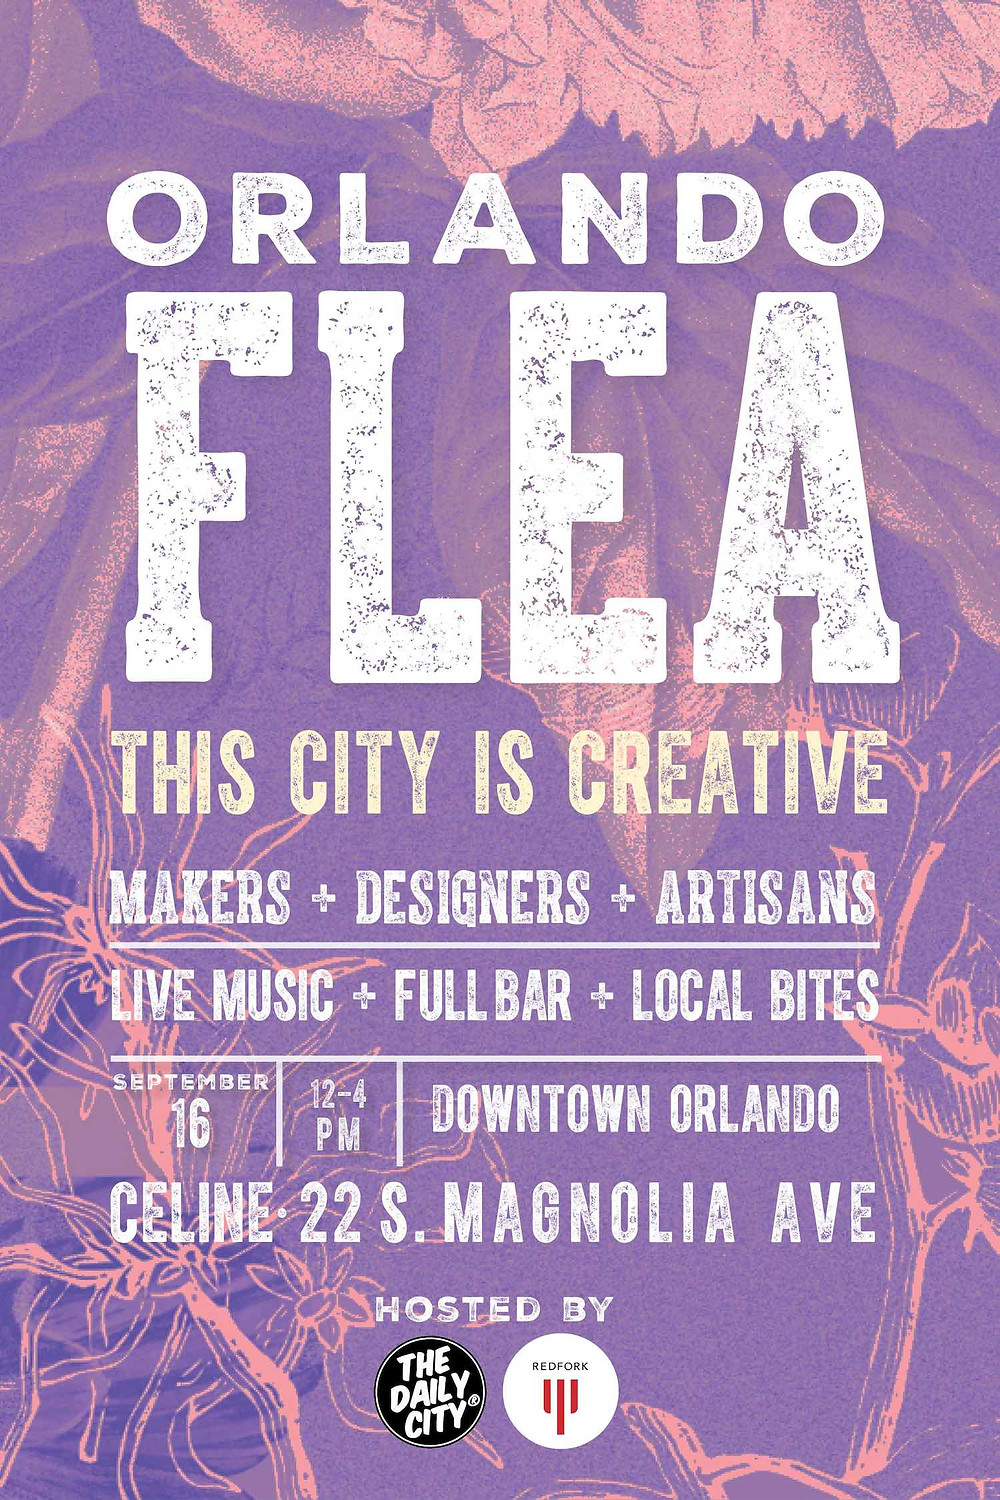 The Daily City is putting on the Orlando Flea September 16, 2018 12pm-4pm in downtown Orlando! For information go to orlandoflea.com!